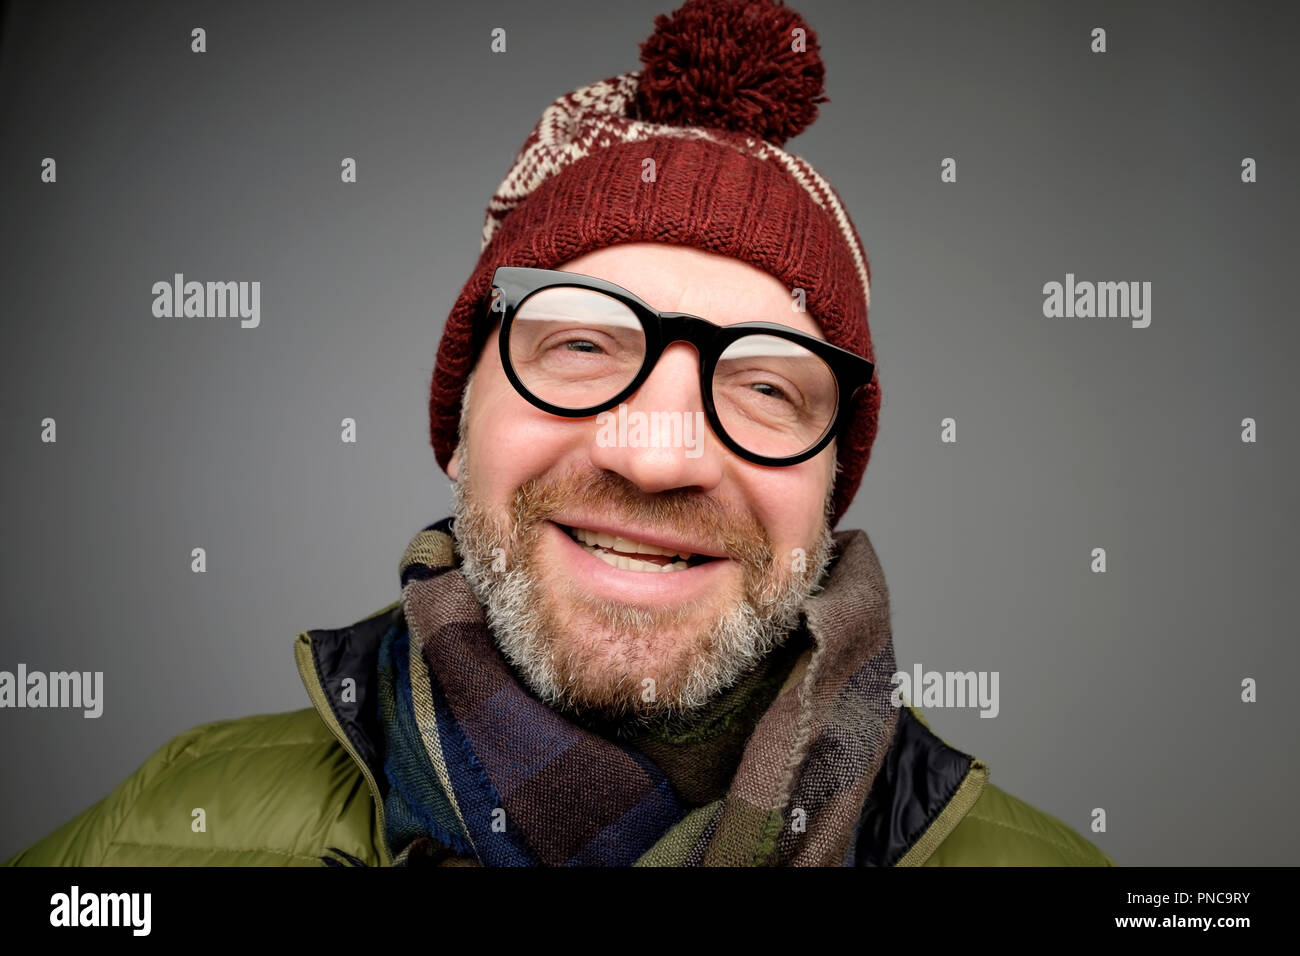 Portrait of mature hipster man in glasses and warm hat posing on gray  background. Smiling bearded man wearing warm clothes for winter studio  shot. Clo c37ea75a97ba